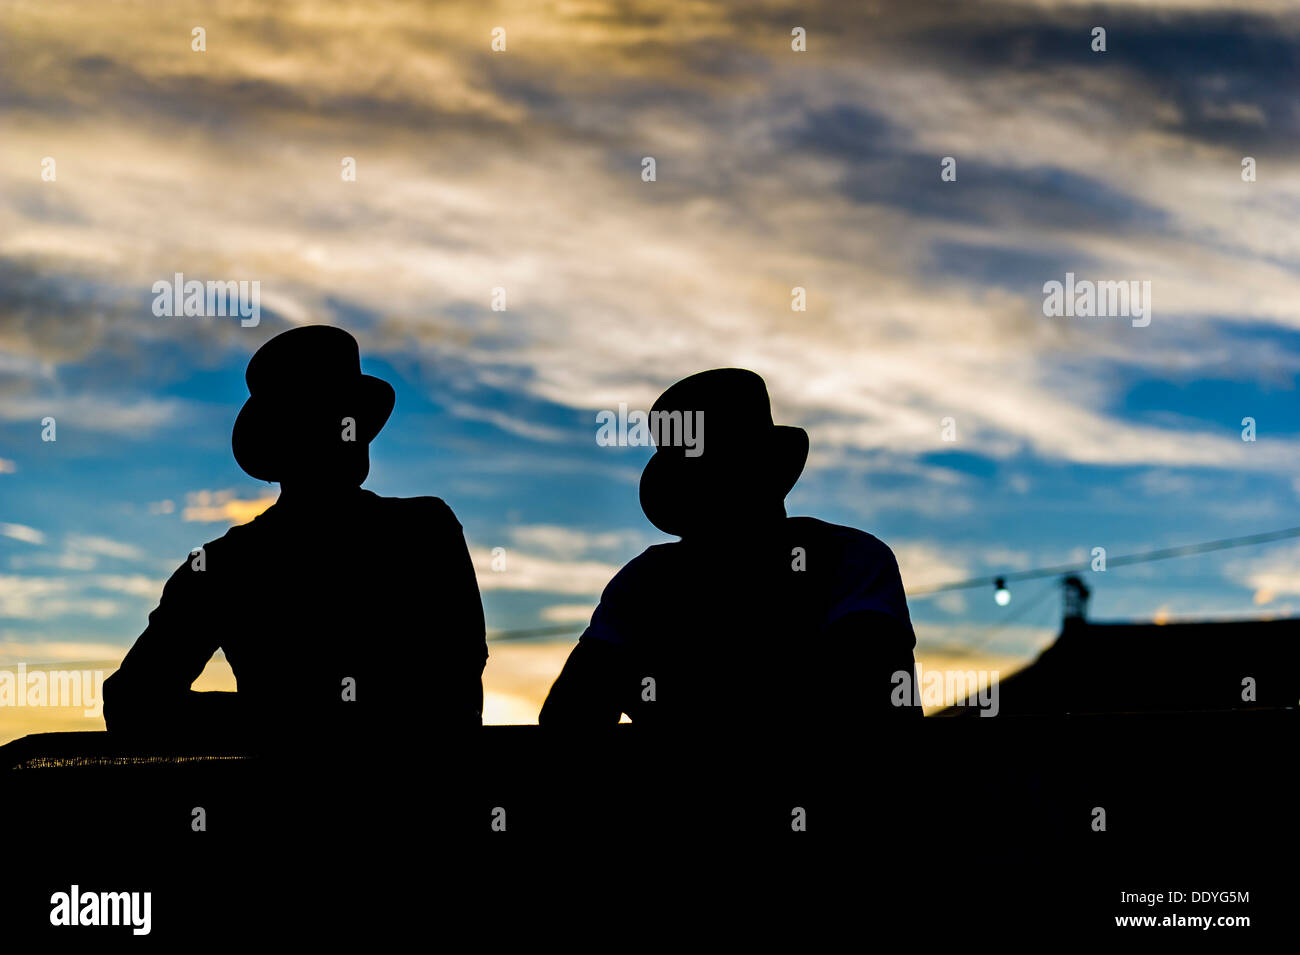 The silhouette of two festivalgoers wearing top hats at the Brownstock Festival in Essex. - Stock Image